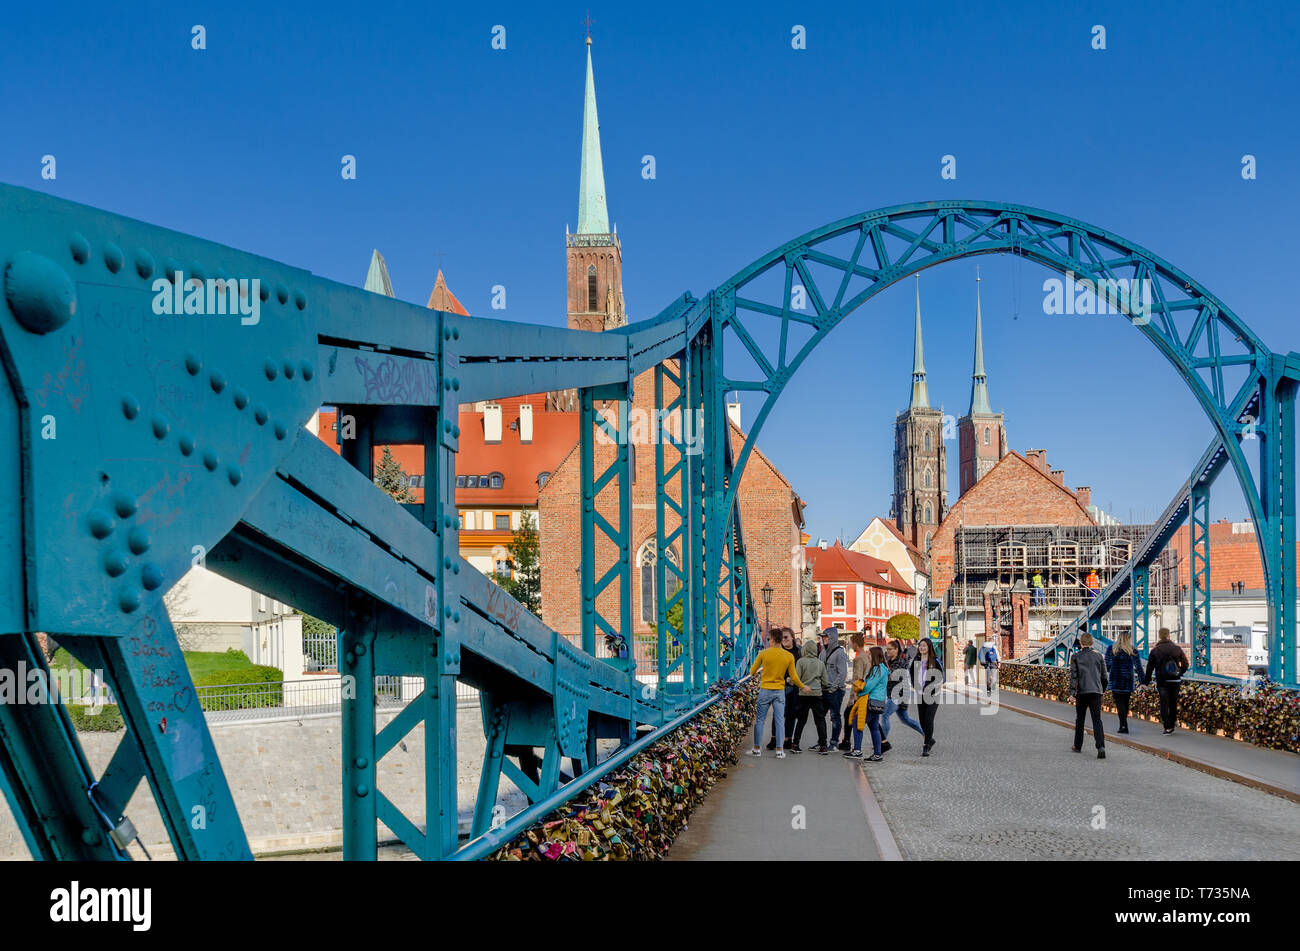 Wroclaw, Lower Silesian province, Poland. Tumski Bridge, leading to the Ostrow Tumski district. Belfries of the Collegiate Church of Holy Cross. Stock Photo